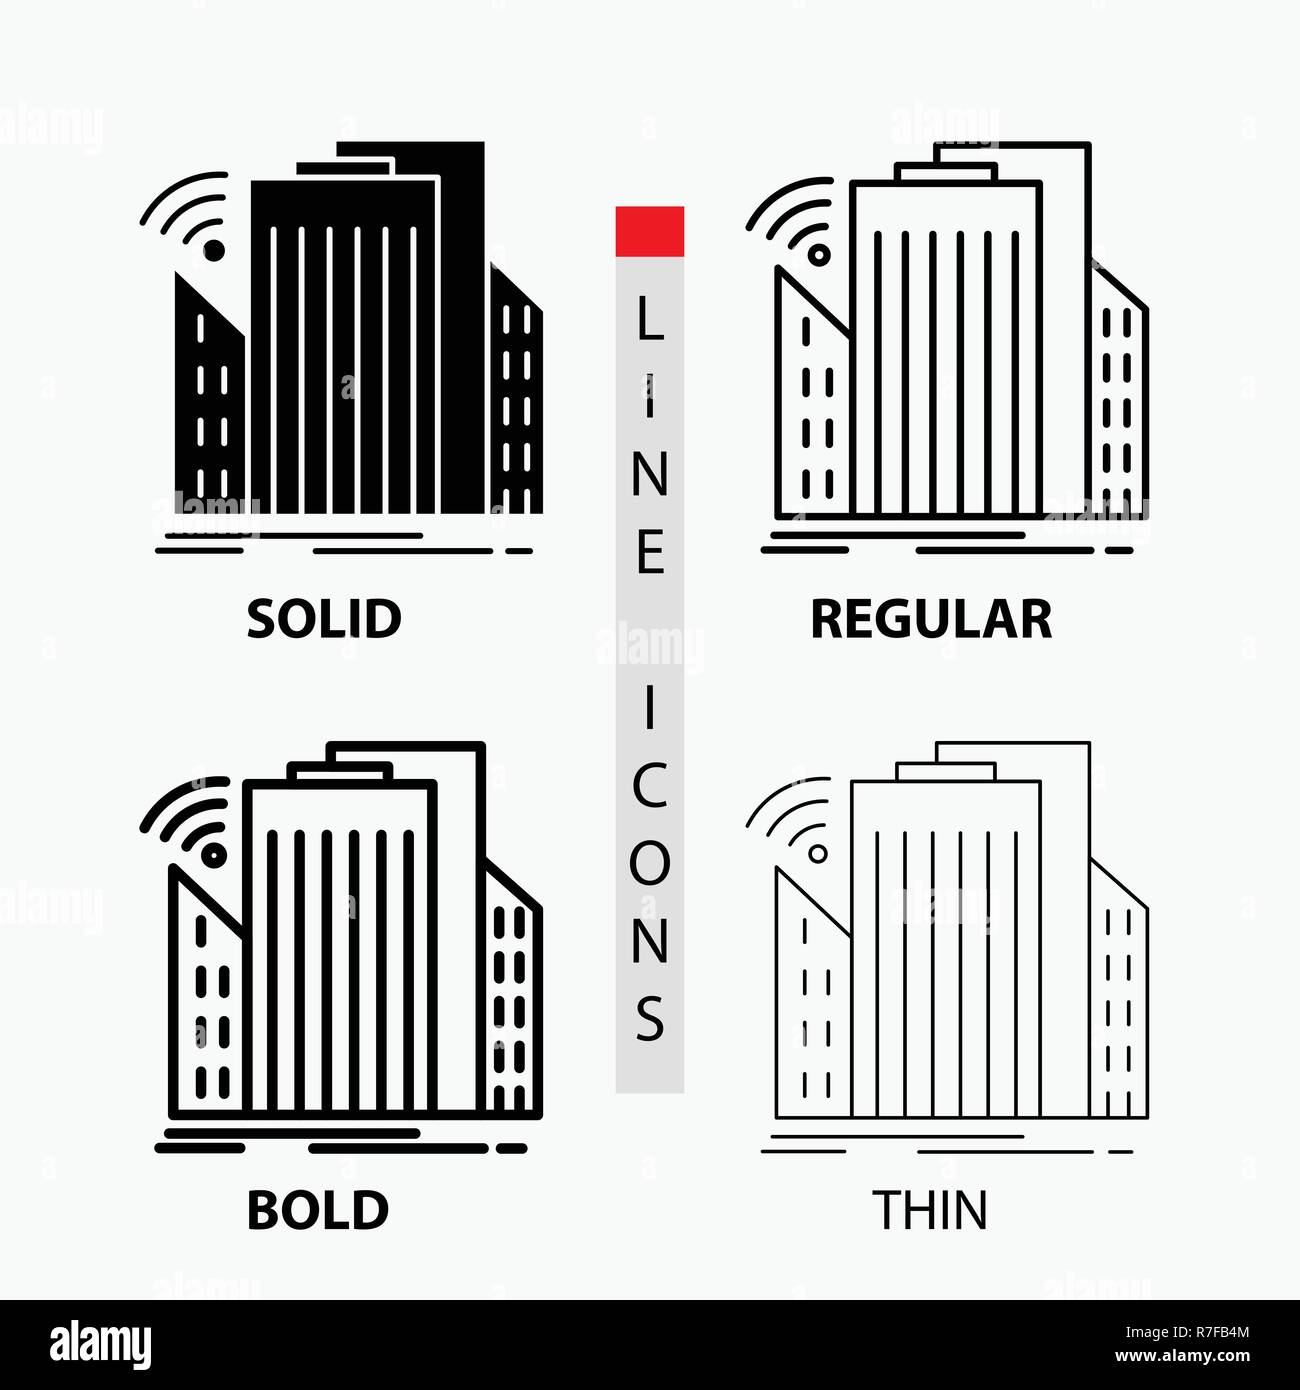 Buildings, city, sensor, smart, urban Icon in Thin, Regular, Bold Line and Glyph Style. Vector illustration - Stock Vector